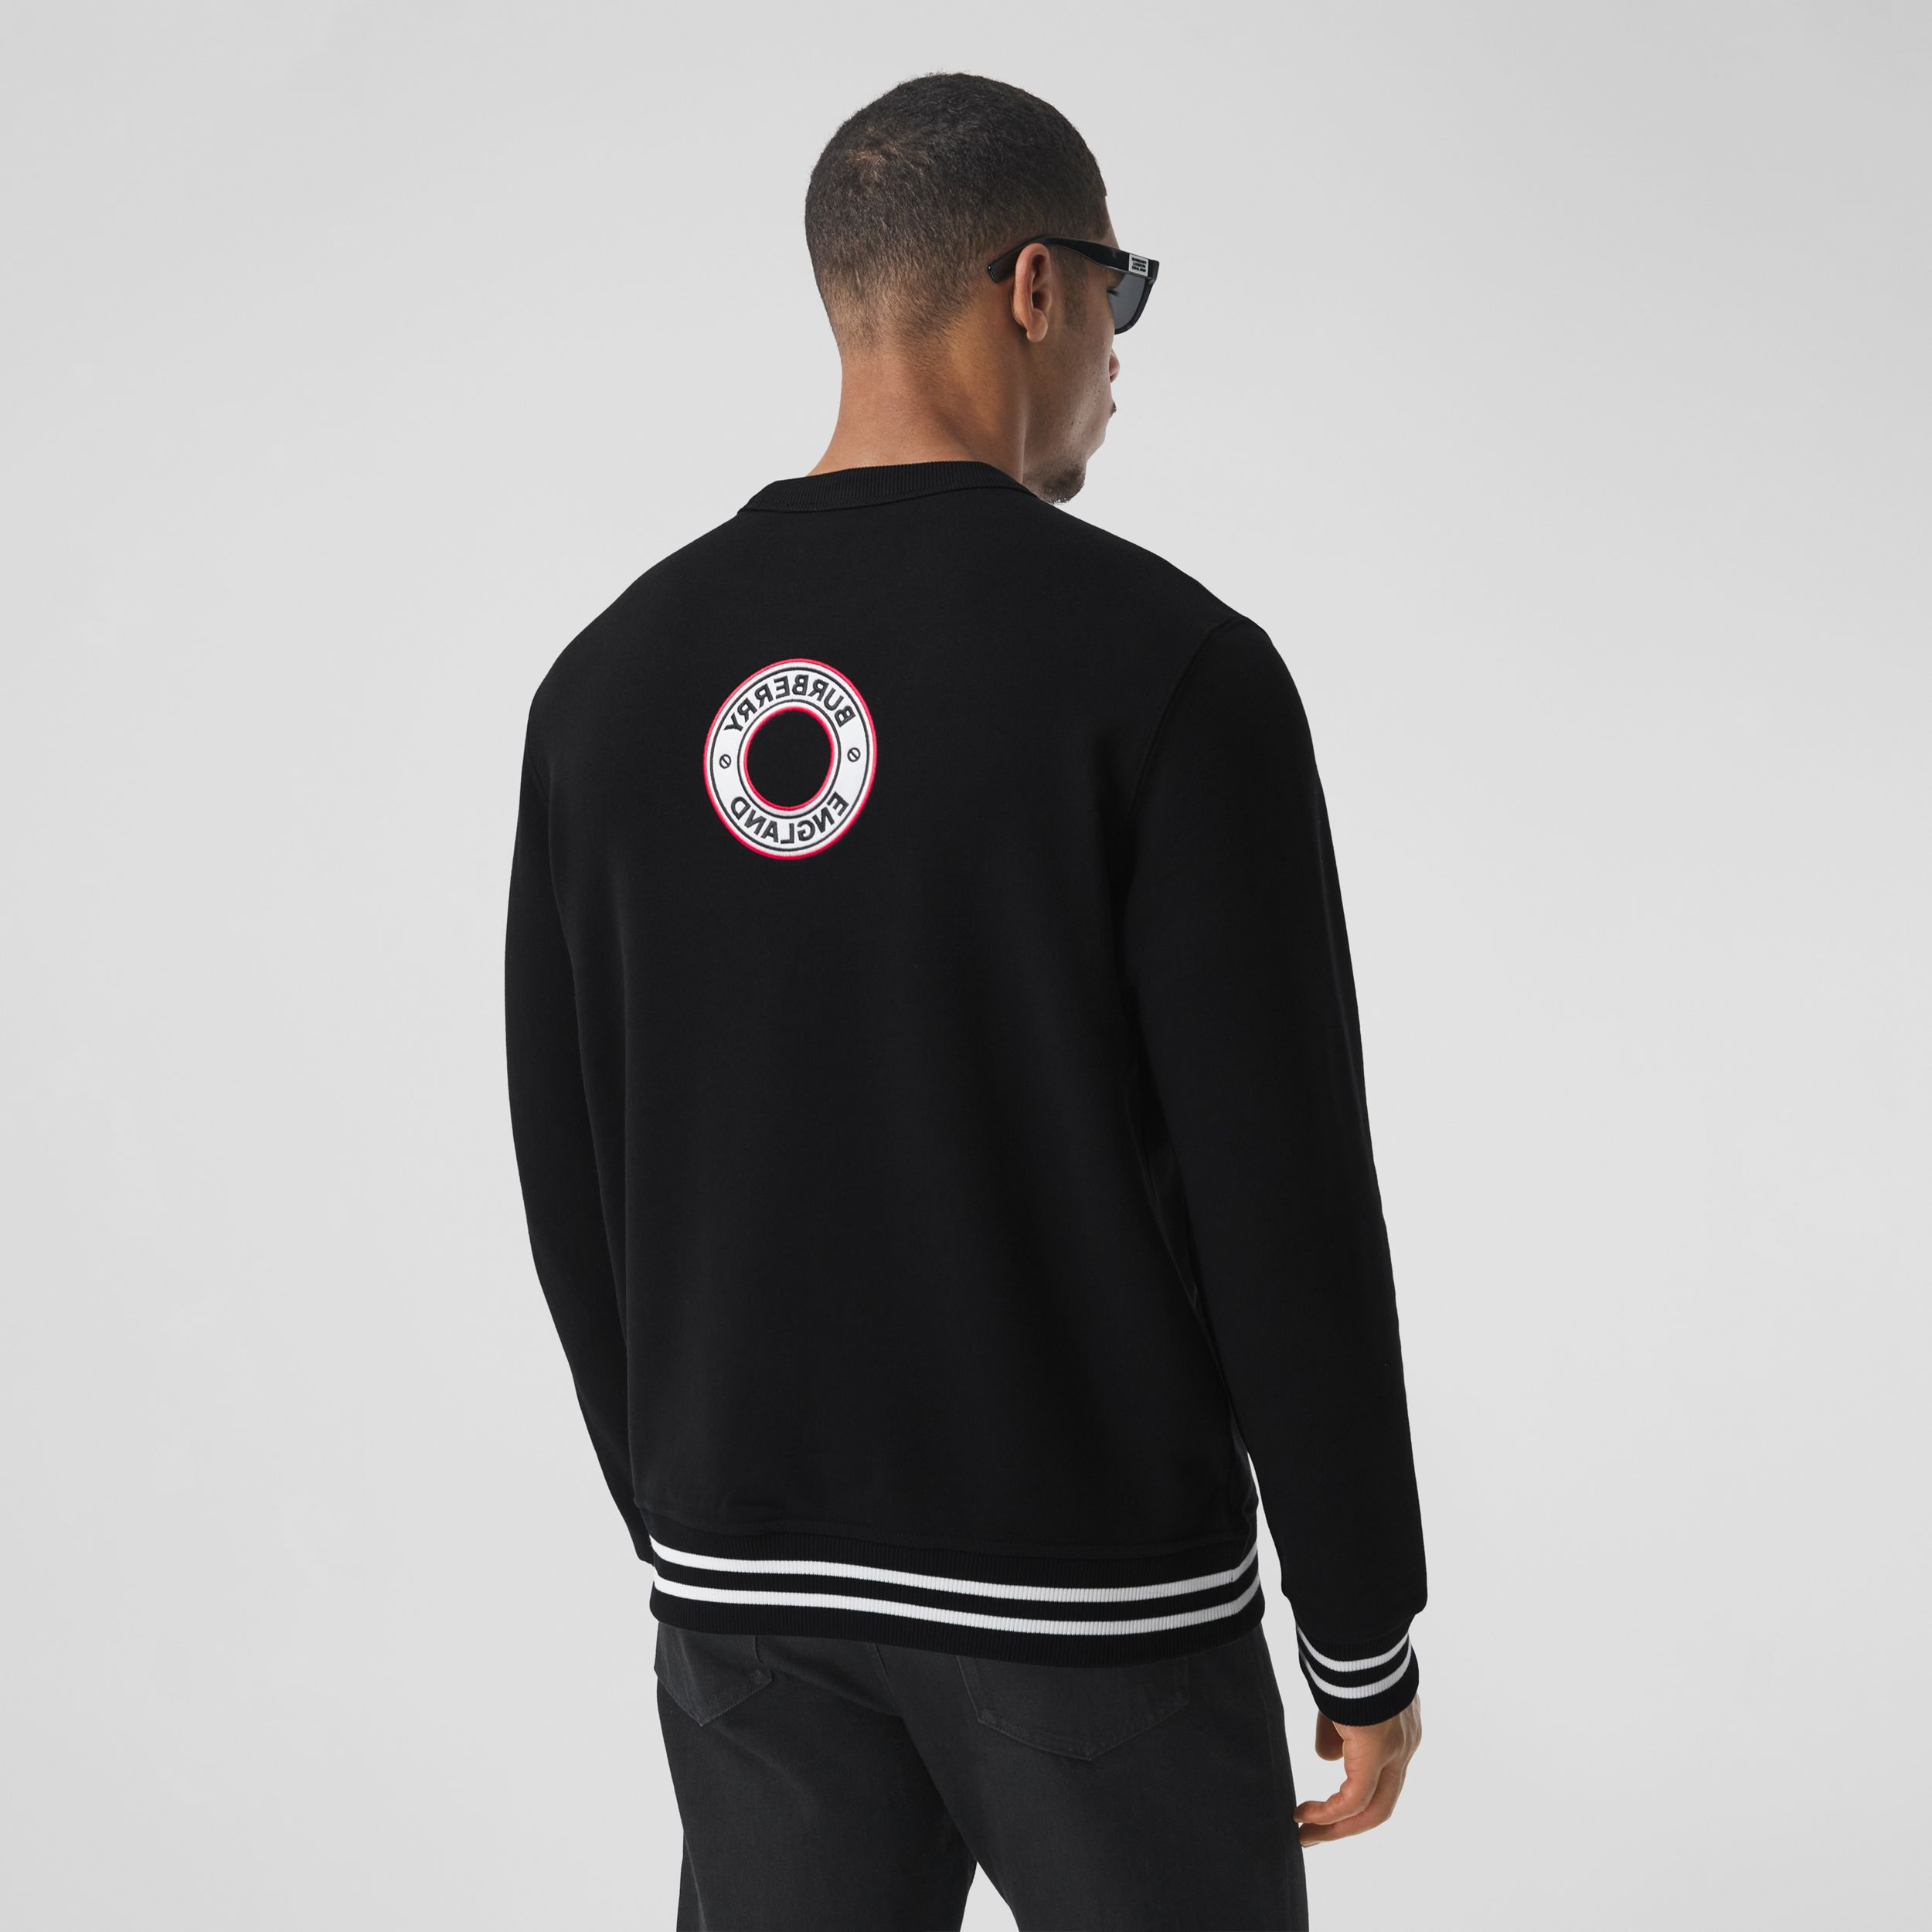 Logo Graphic Appliqué Cotton Sweatshirt in Black - Men | Burberry - 3